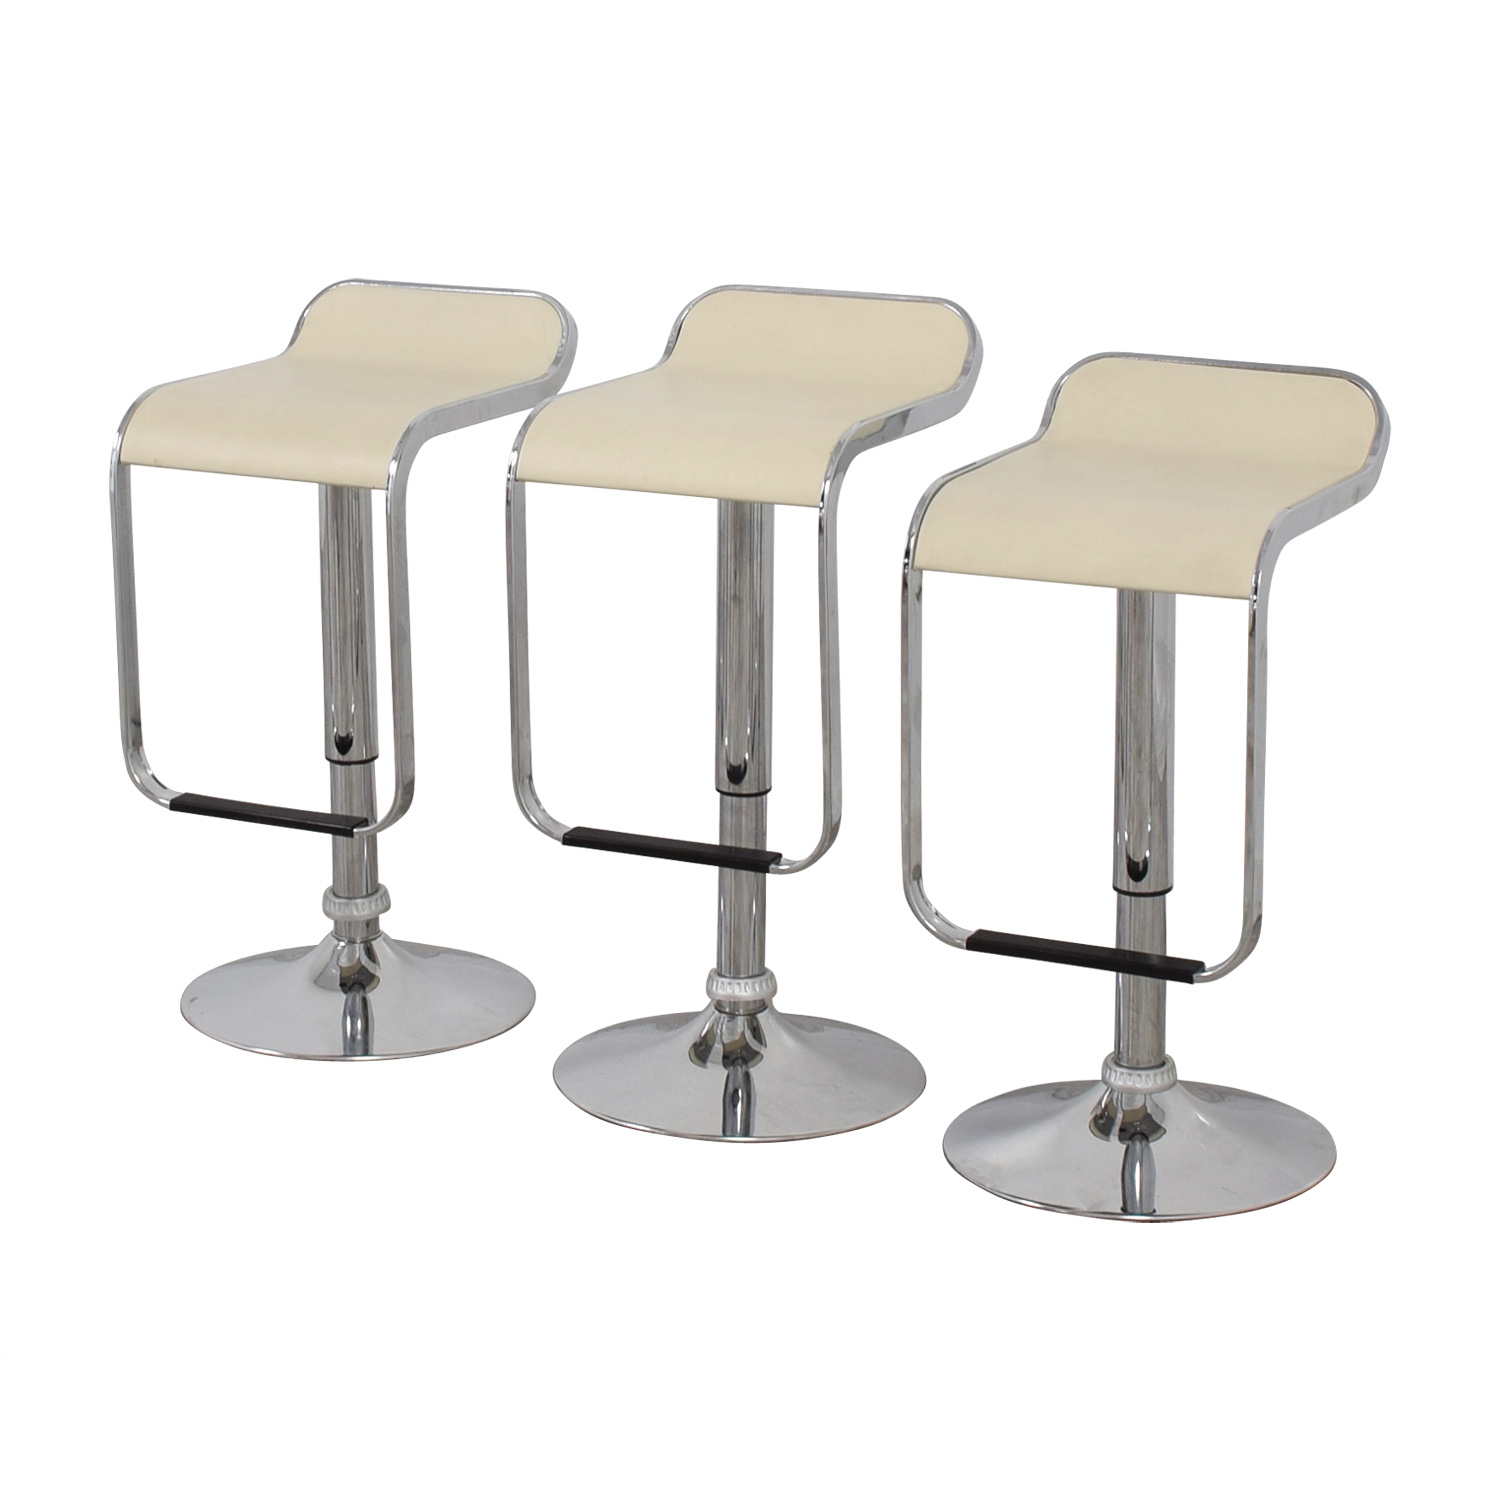 Pottery Barn Pottery Barn White and Chrome Stools for sale